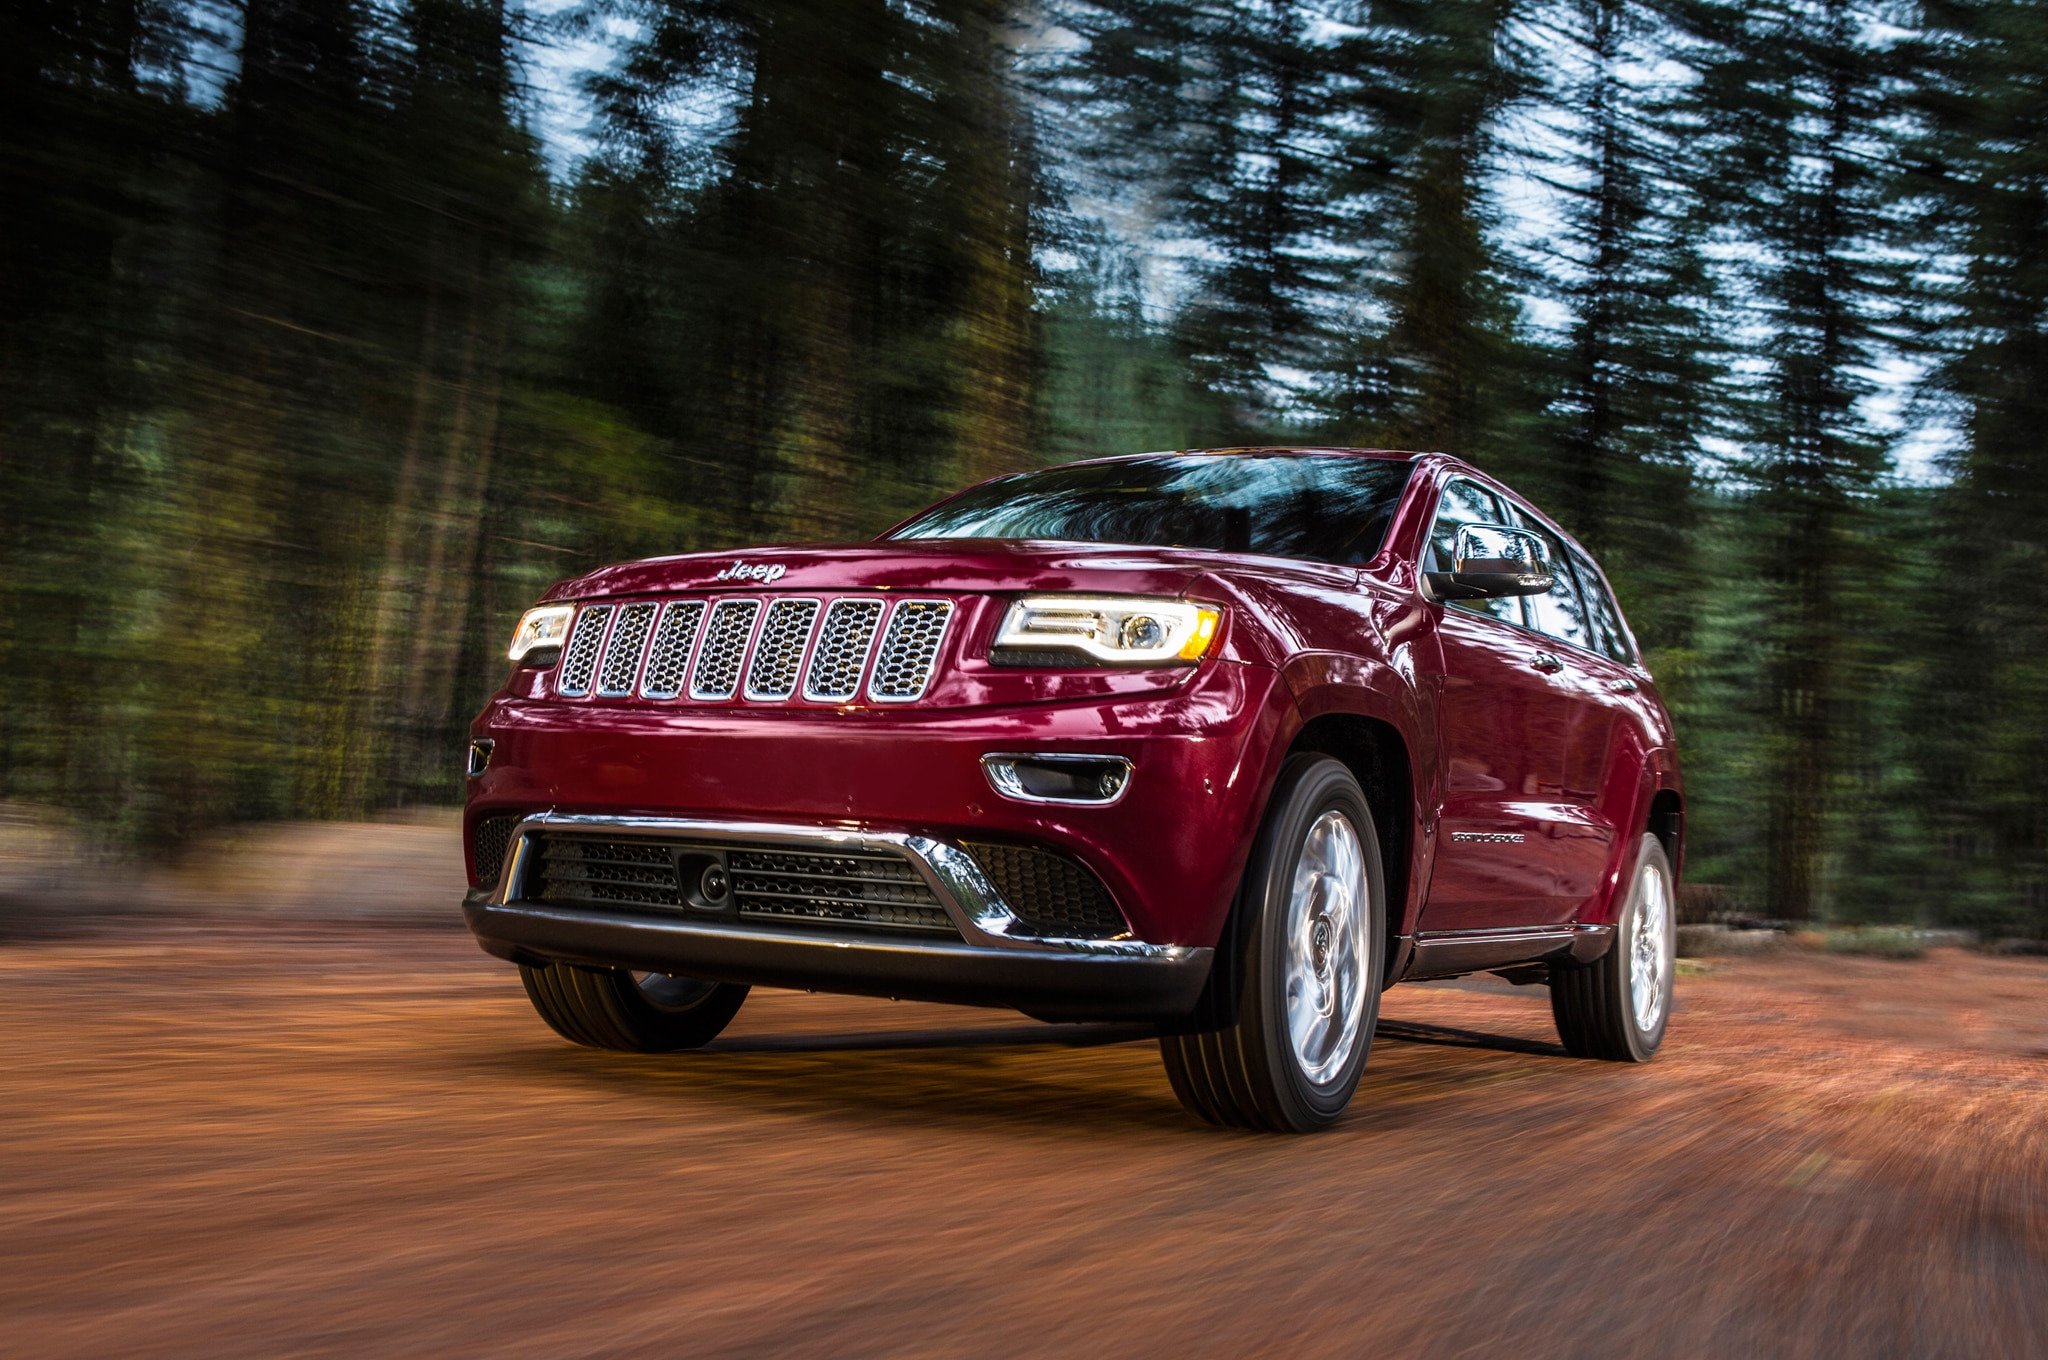 2016 jeep grand cherokee summit ecodiesel one week road test and review automobile magazine. Black Bedroom Furniture Sets. Home Design Ideas